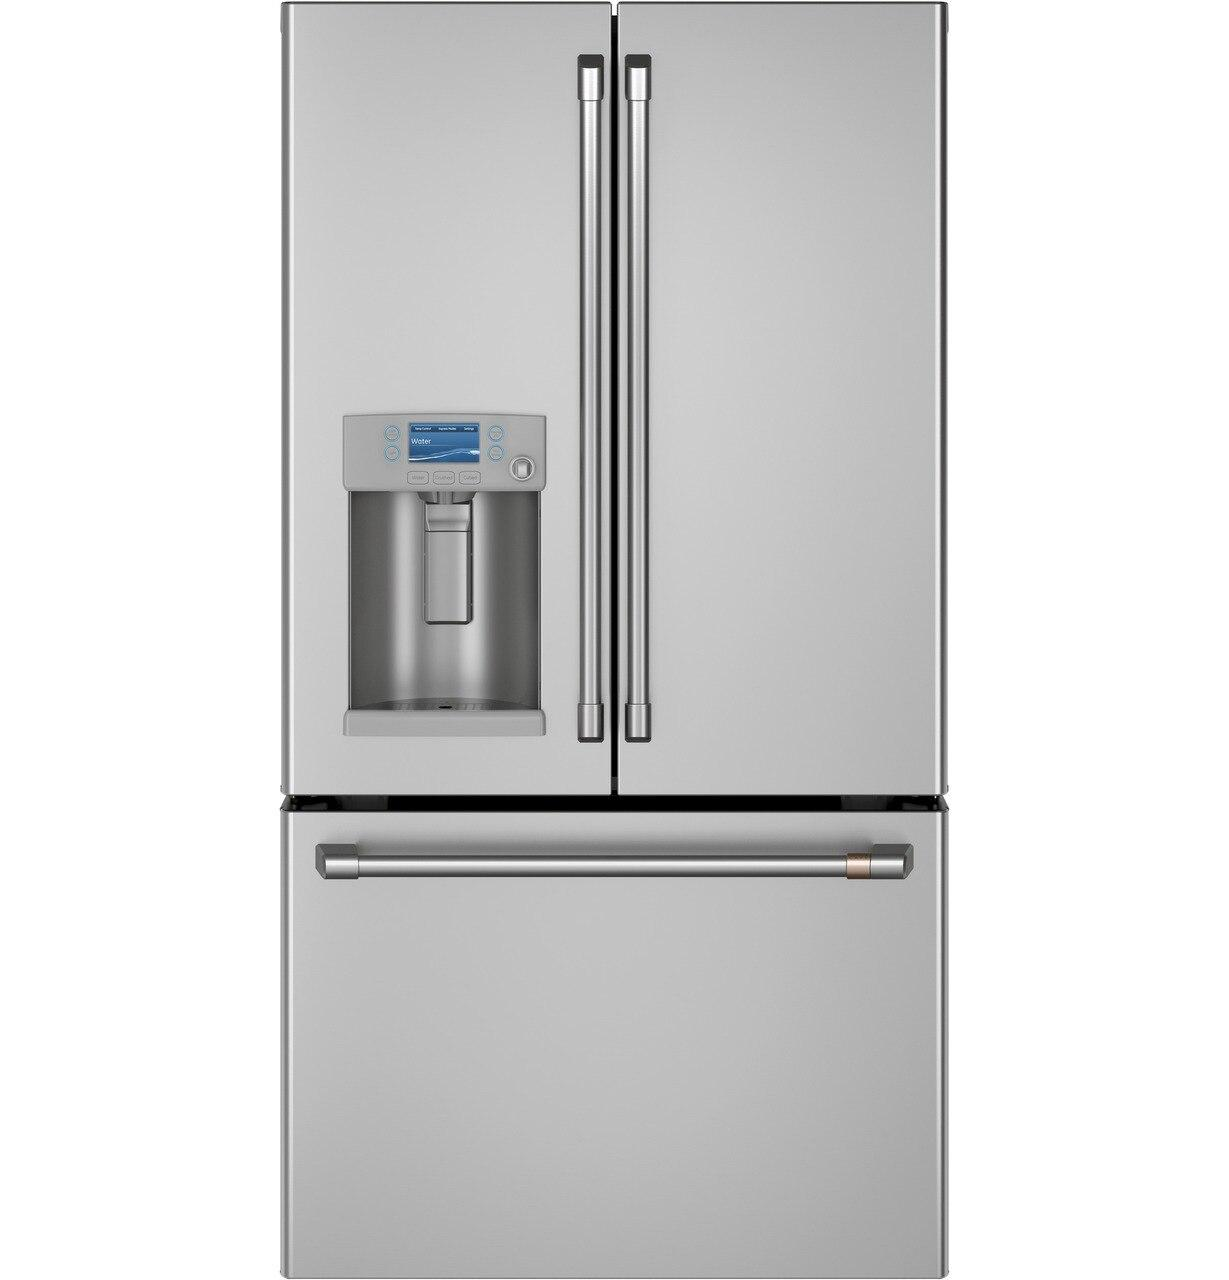 CafeEnergy Star® 22.1 Cu. Ft. Smart Counter-Depth French-Door Refrigerator With Hot Water Dispenser